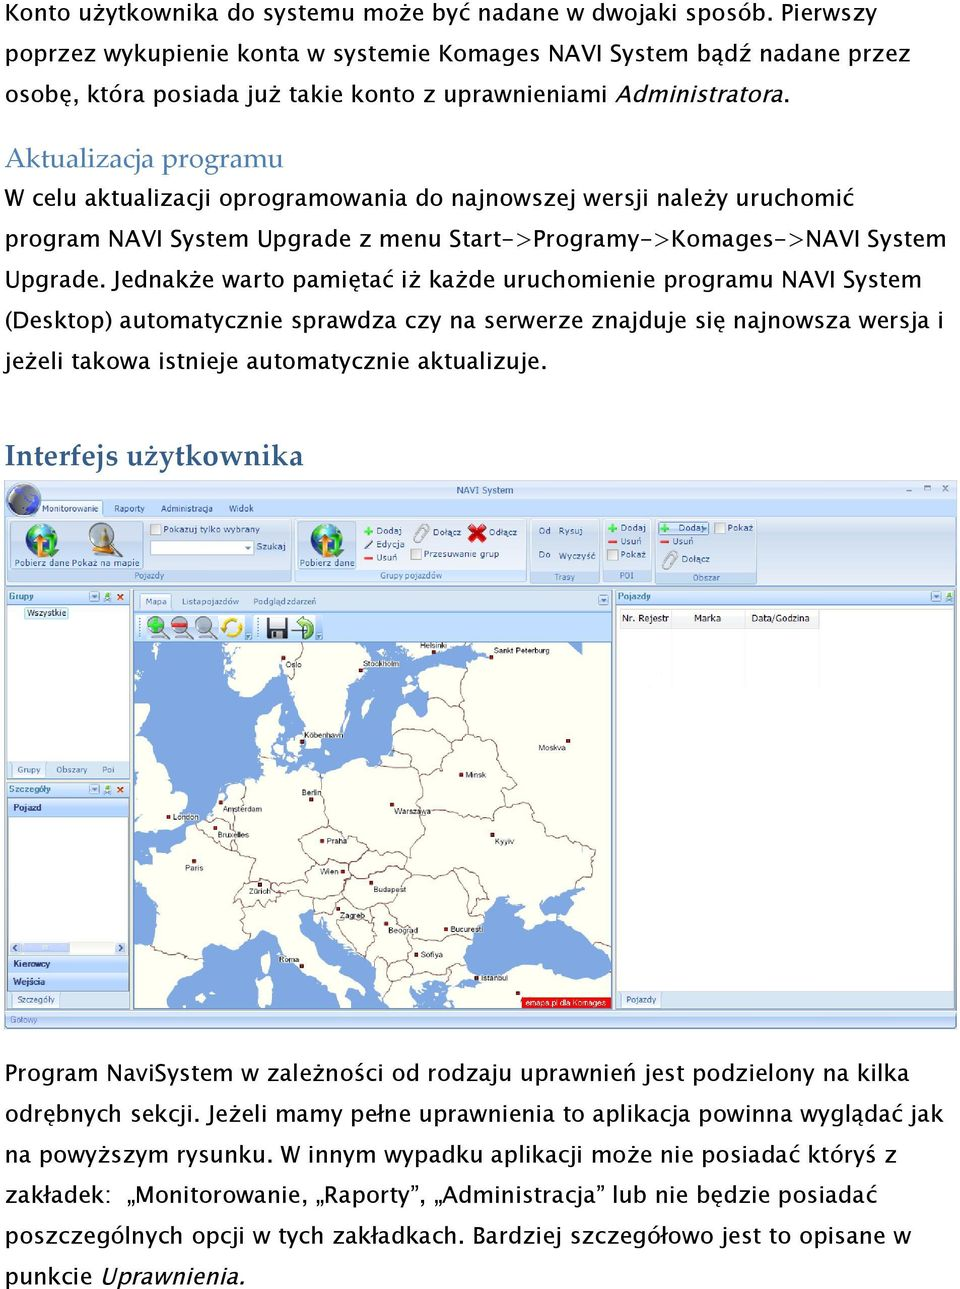 Aktualizacja programu W celu aktualizacji oprogramowania do najnowszej wersji należy uruchomić program NAVI System Upgrade z menu Start->Programy->Komages->NAVI System Upgrade.